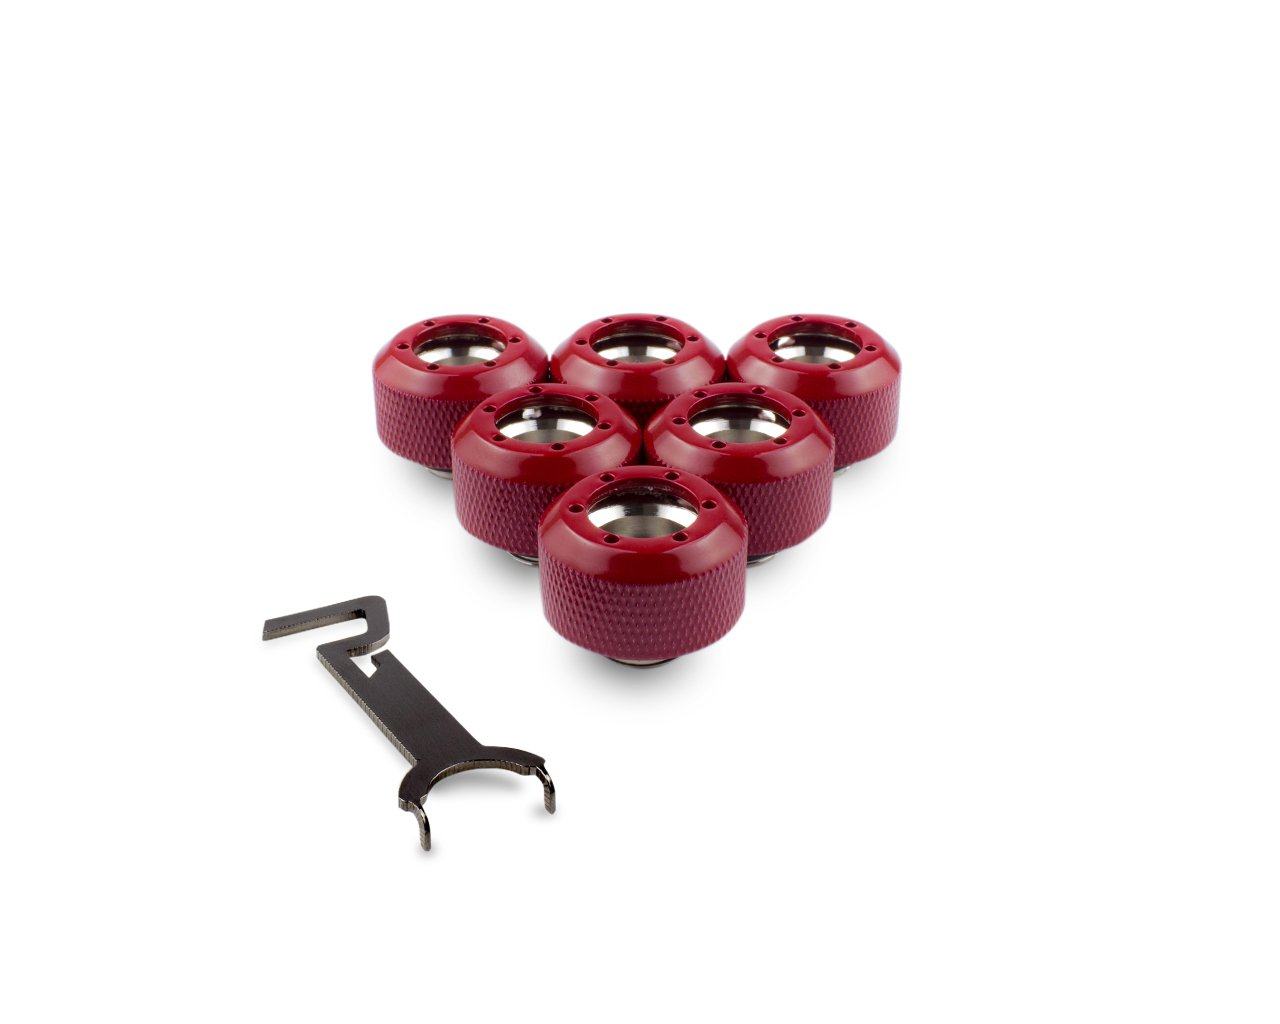 PrimoChill 1/2in. Rigid RevolverSX Series Fitting - Razor Red - 6 Pack